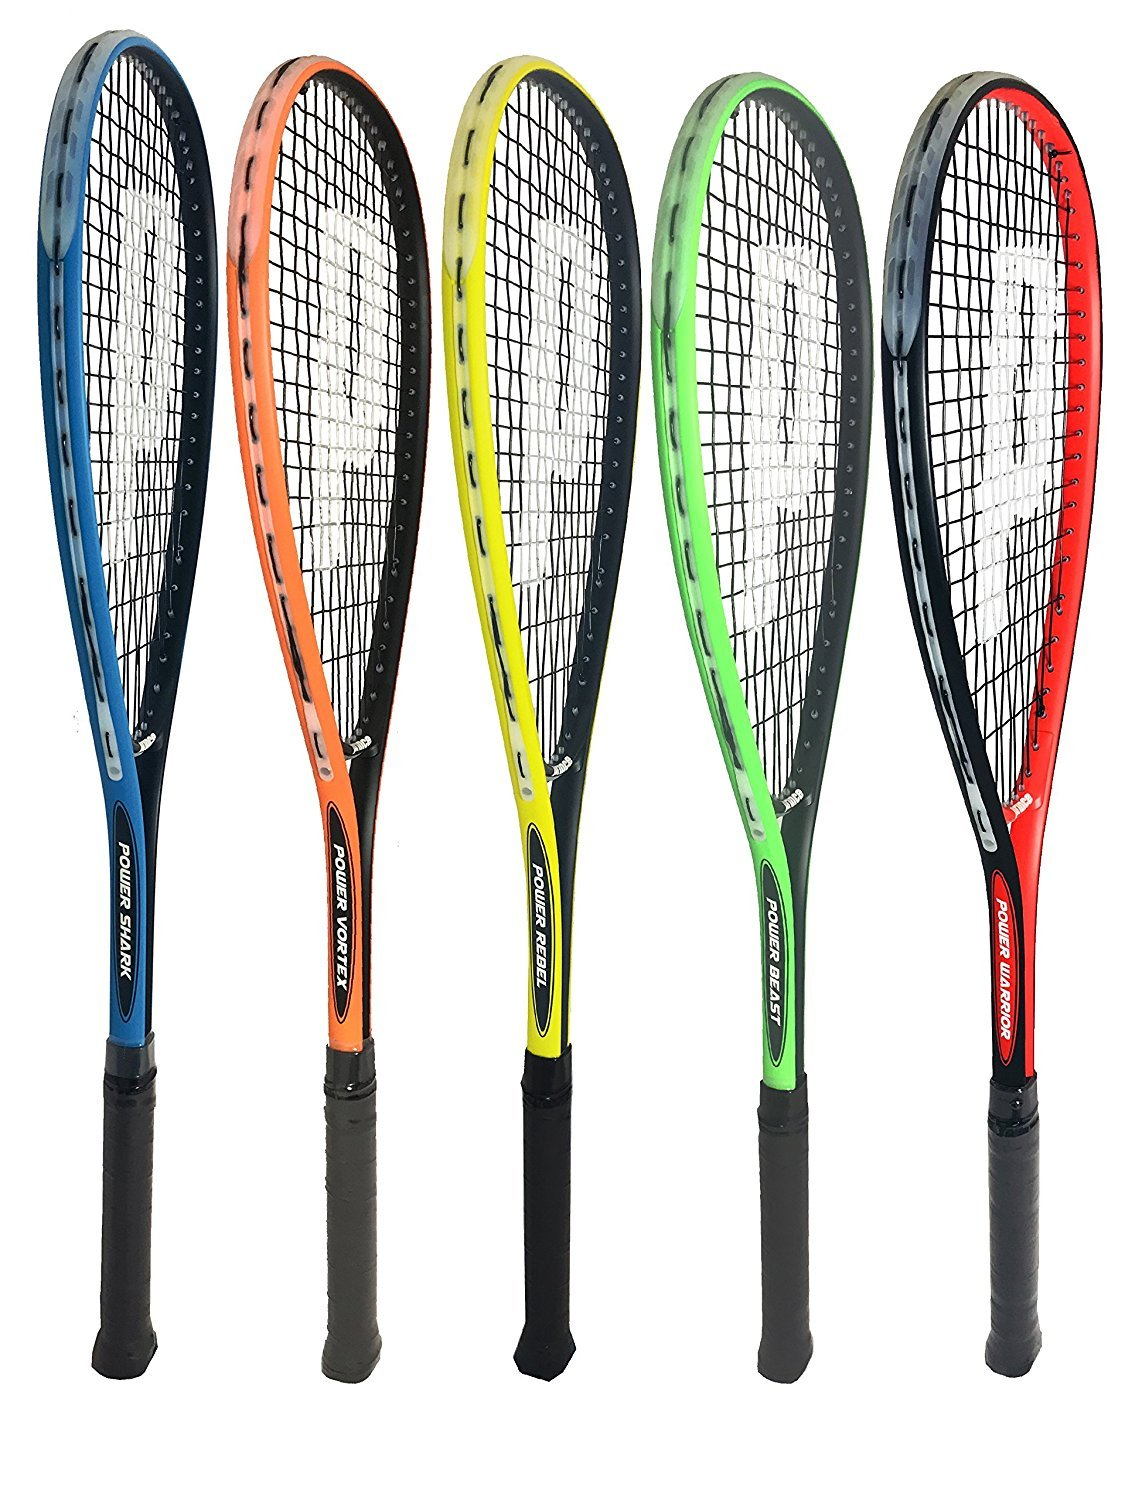 Prince Power Squash Racket inc Full Length Cover (Choice of Warrior, Beast, Rebel, Vortex and Shark)